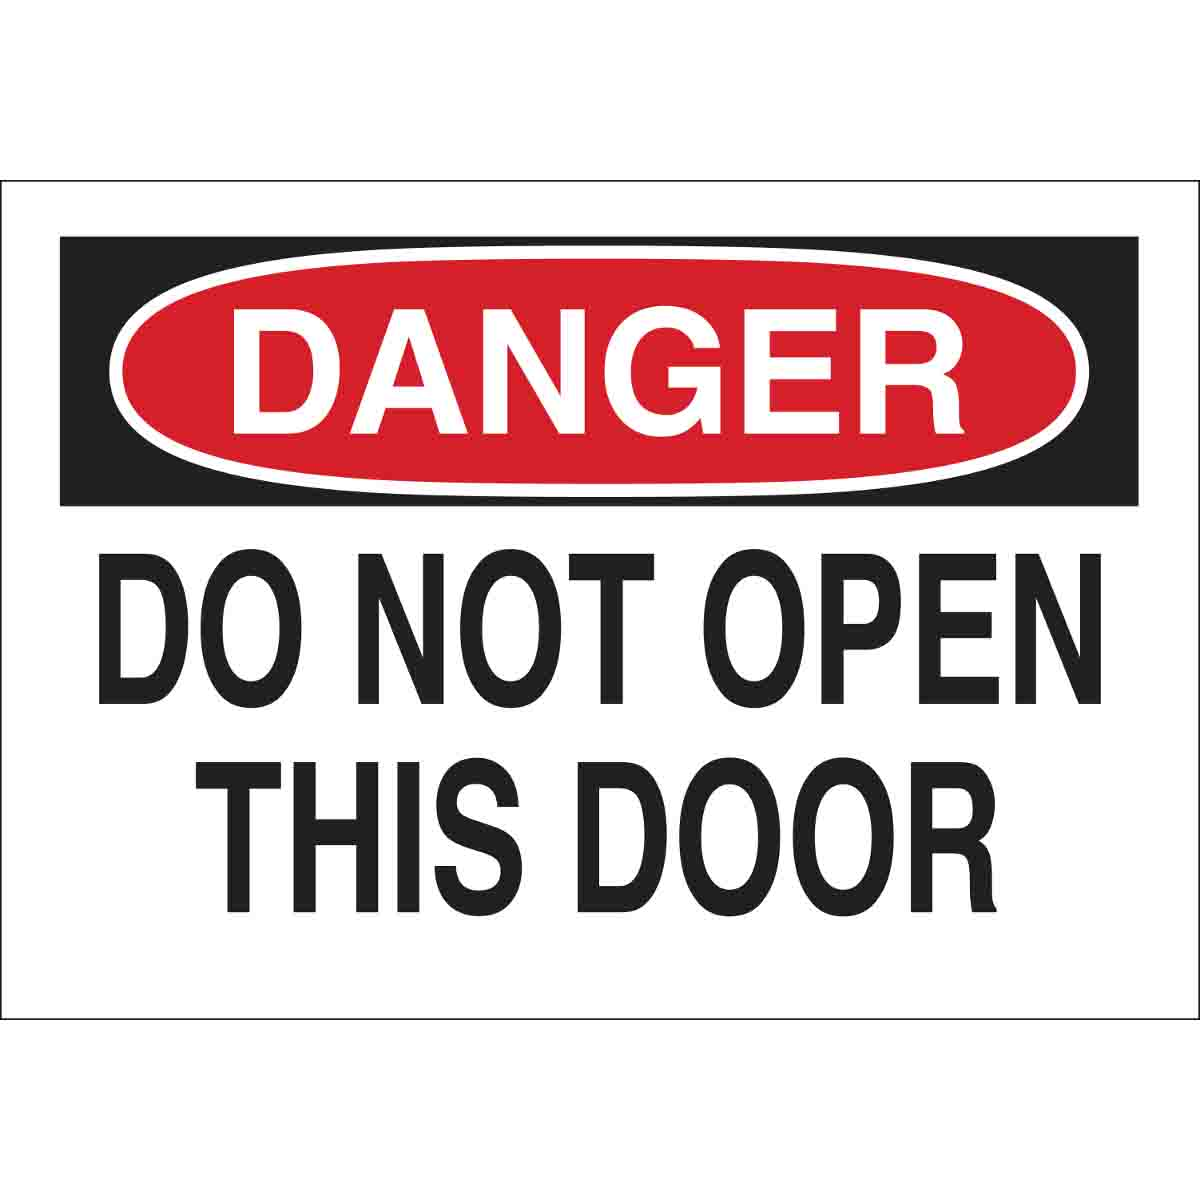 Do not open door